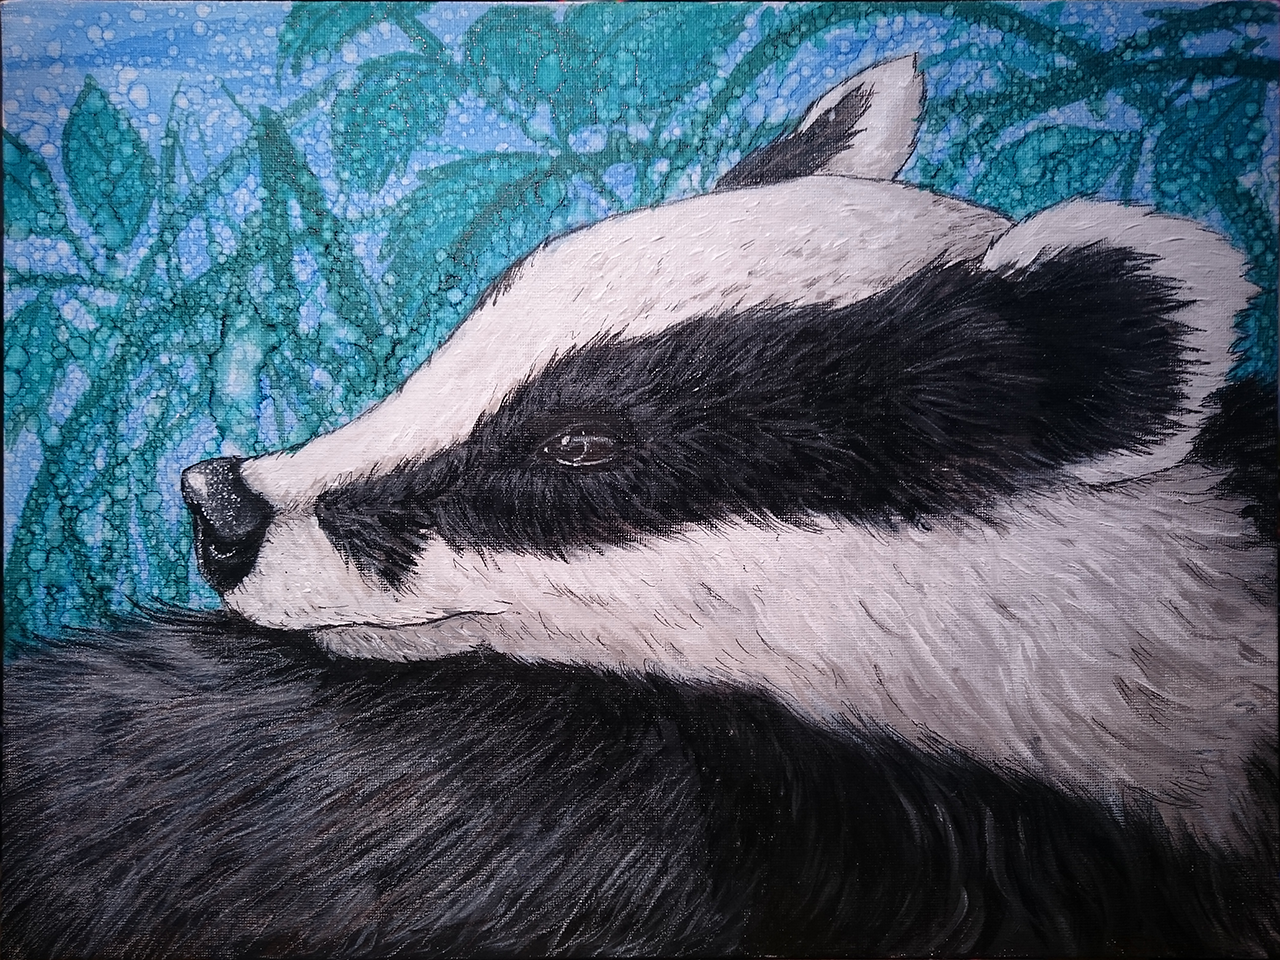 Badger portrait, in Acrylic paint, Indian ink and Prismacolour pencils on canvas.